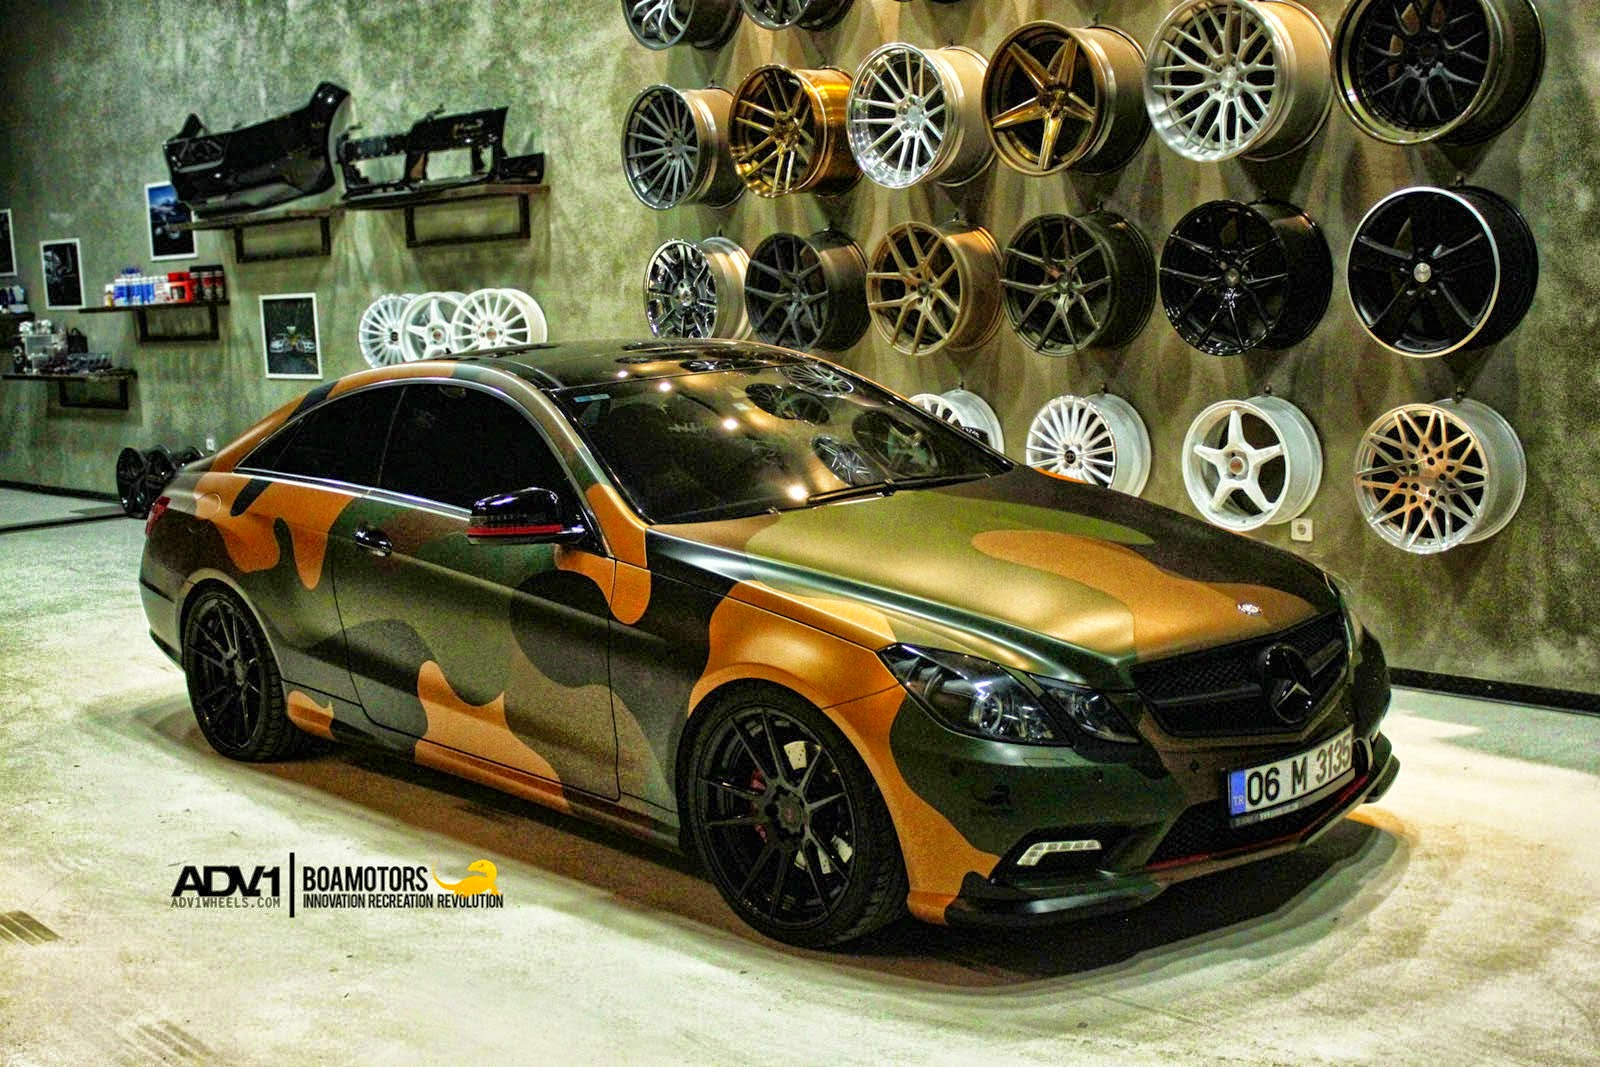 Mercedes benz w207 e class coupe on adv5 2mv2 wheels for Mercedes benz tuning